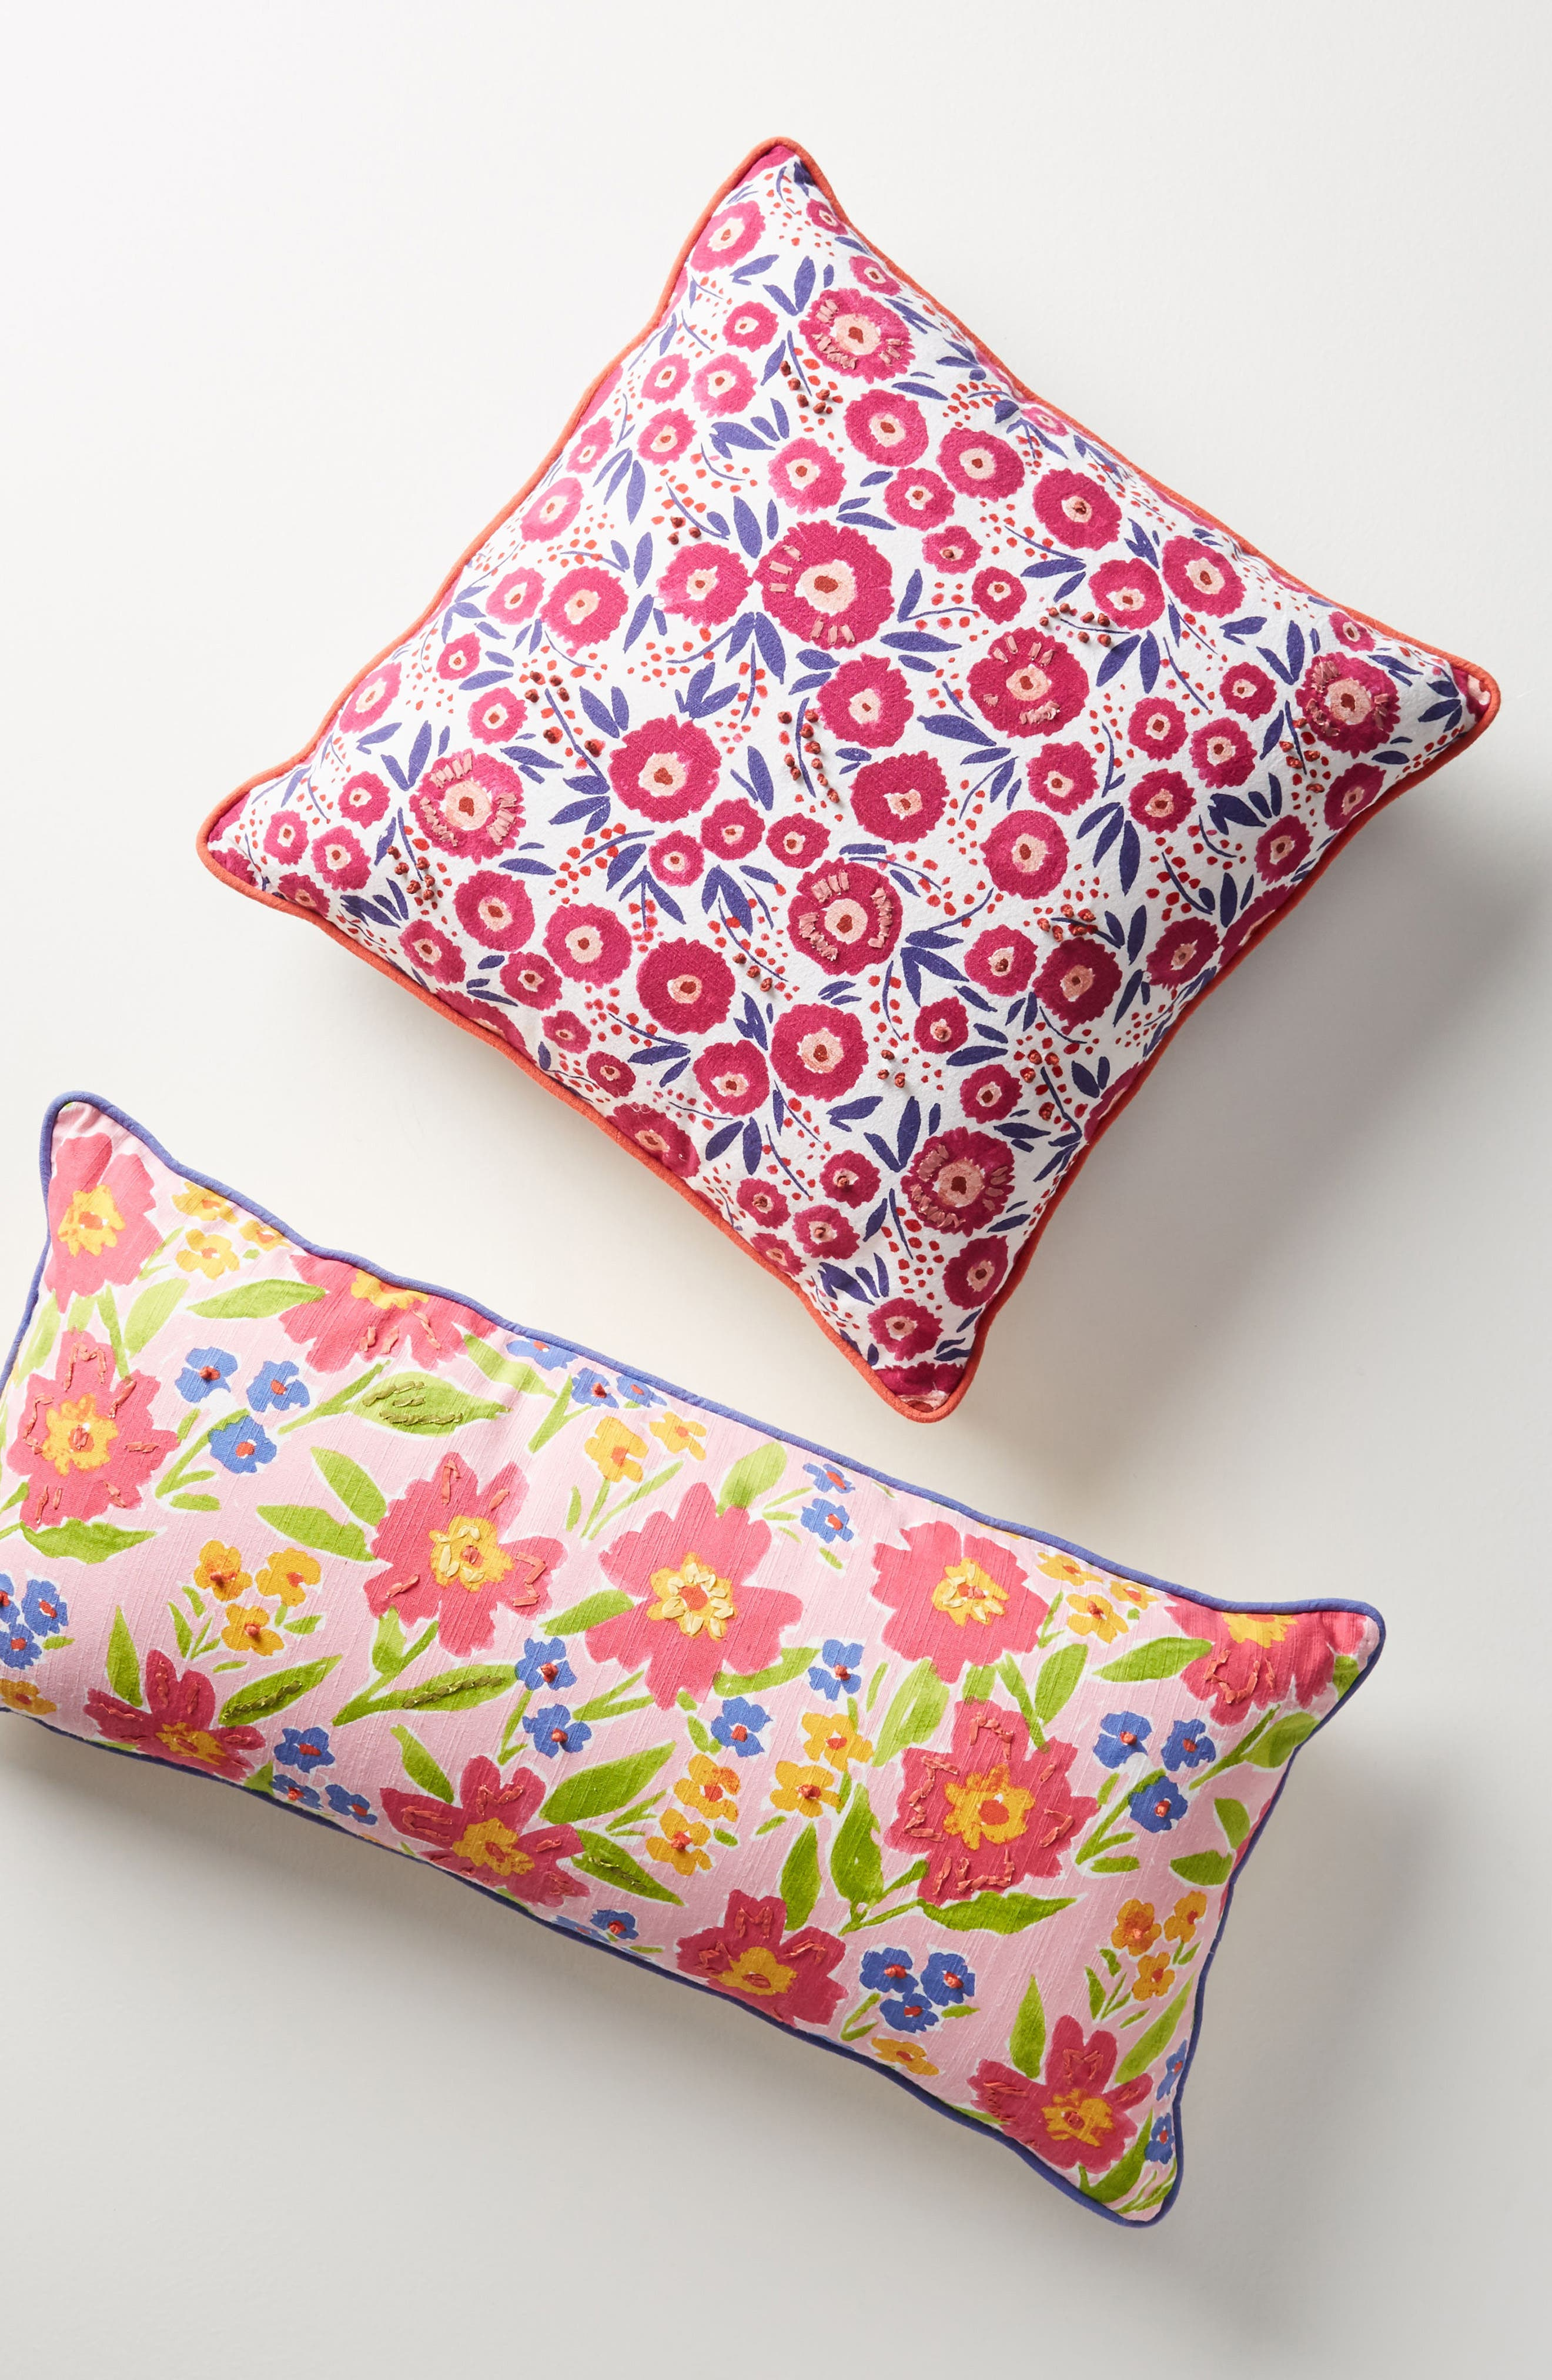 ANTHROPOLOGIE,                             Painted Poppies Accent Pillow,                             Alternate thumbnail 5, color,                             650